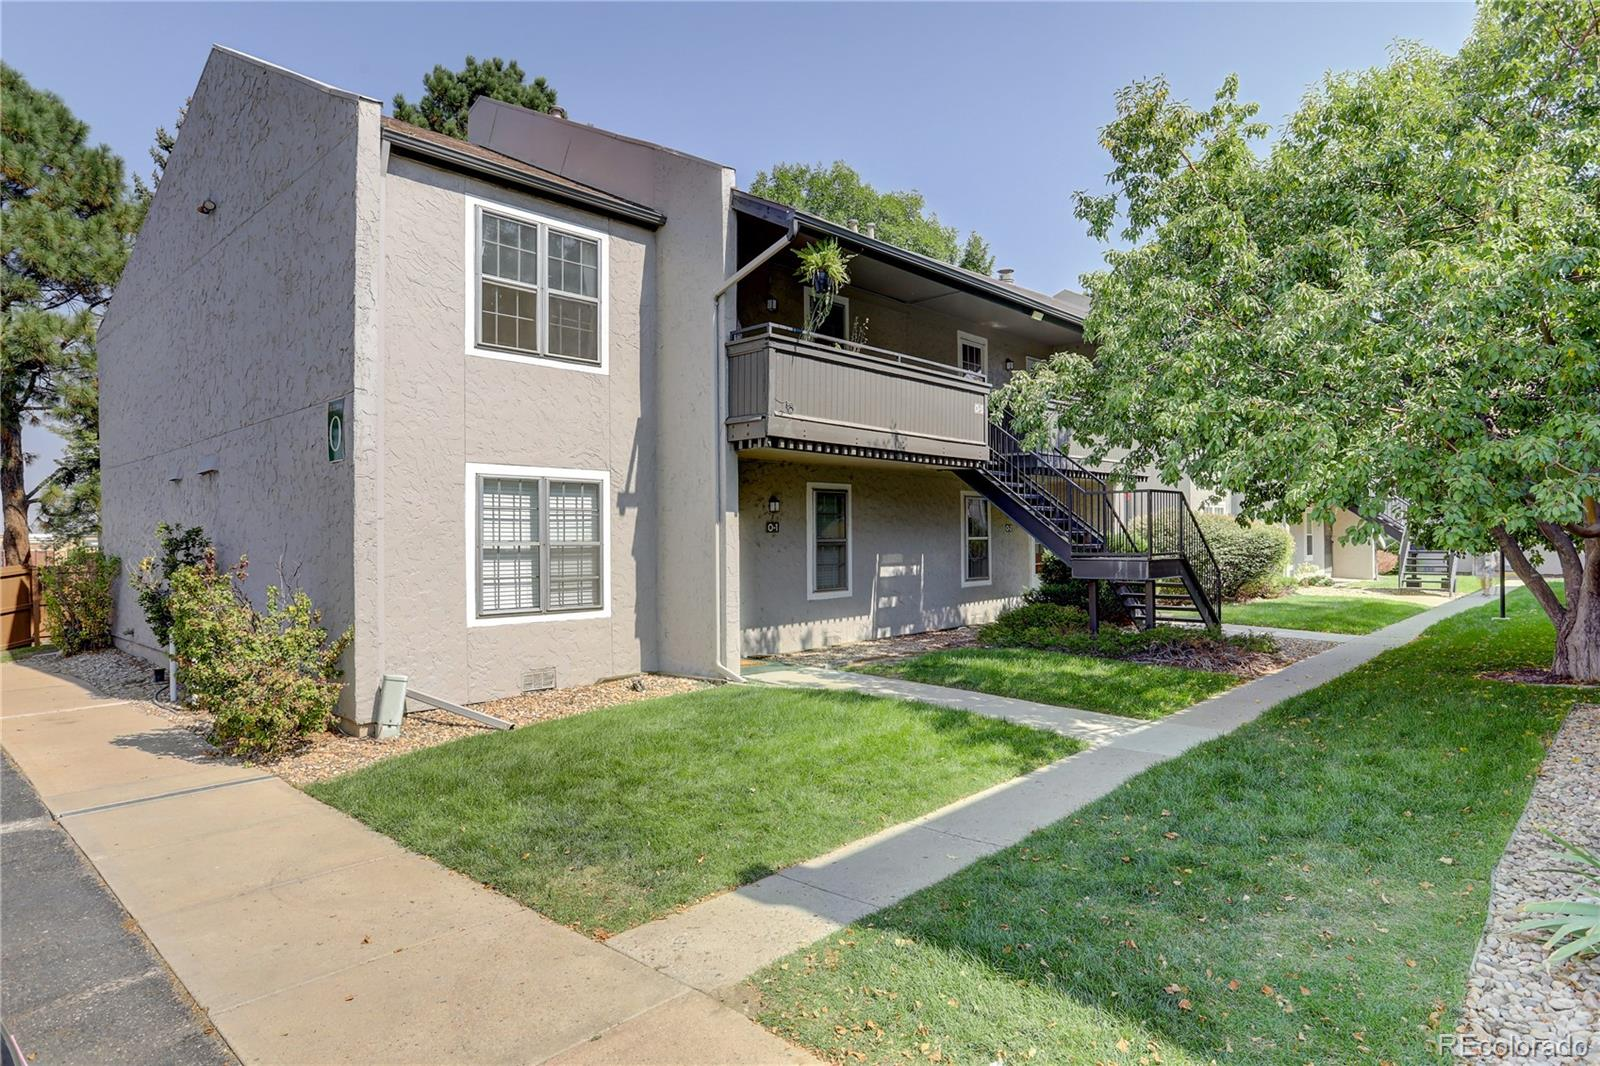 Don't miss out on this cute and cozy move-in ready condo in Centennial's desirable Streets of Southglenn neighborhood. There is plenty of space in this rare two bedroom, two bath home surrounded by beautiful shade trees and in the perfect location. Updated flooring, lighting and designer paint are ready for you. Balconies are located on the front and back of the unit to enjoy the outdoors. Onsite amenities include a pool, sauna and fitness center. Cherry Knolls and DeKoevend parks are nearby, great for a stroll and biking. The home includes one covered parking spot and plenty of open parking available for that second vehicle and a bonus storage unit for bikes or extras. Close distance to restaurants and shopping!